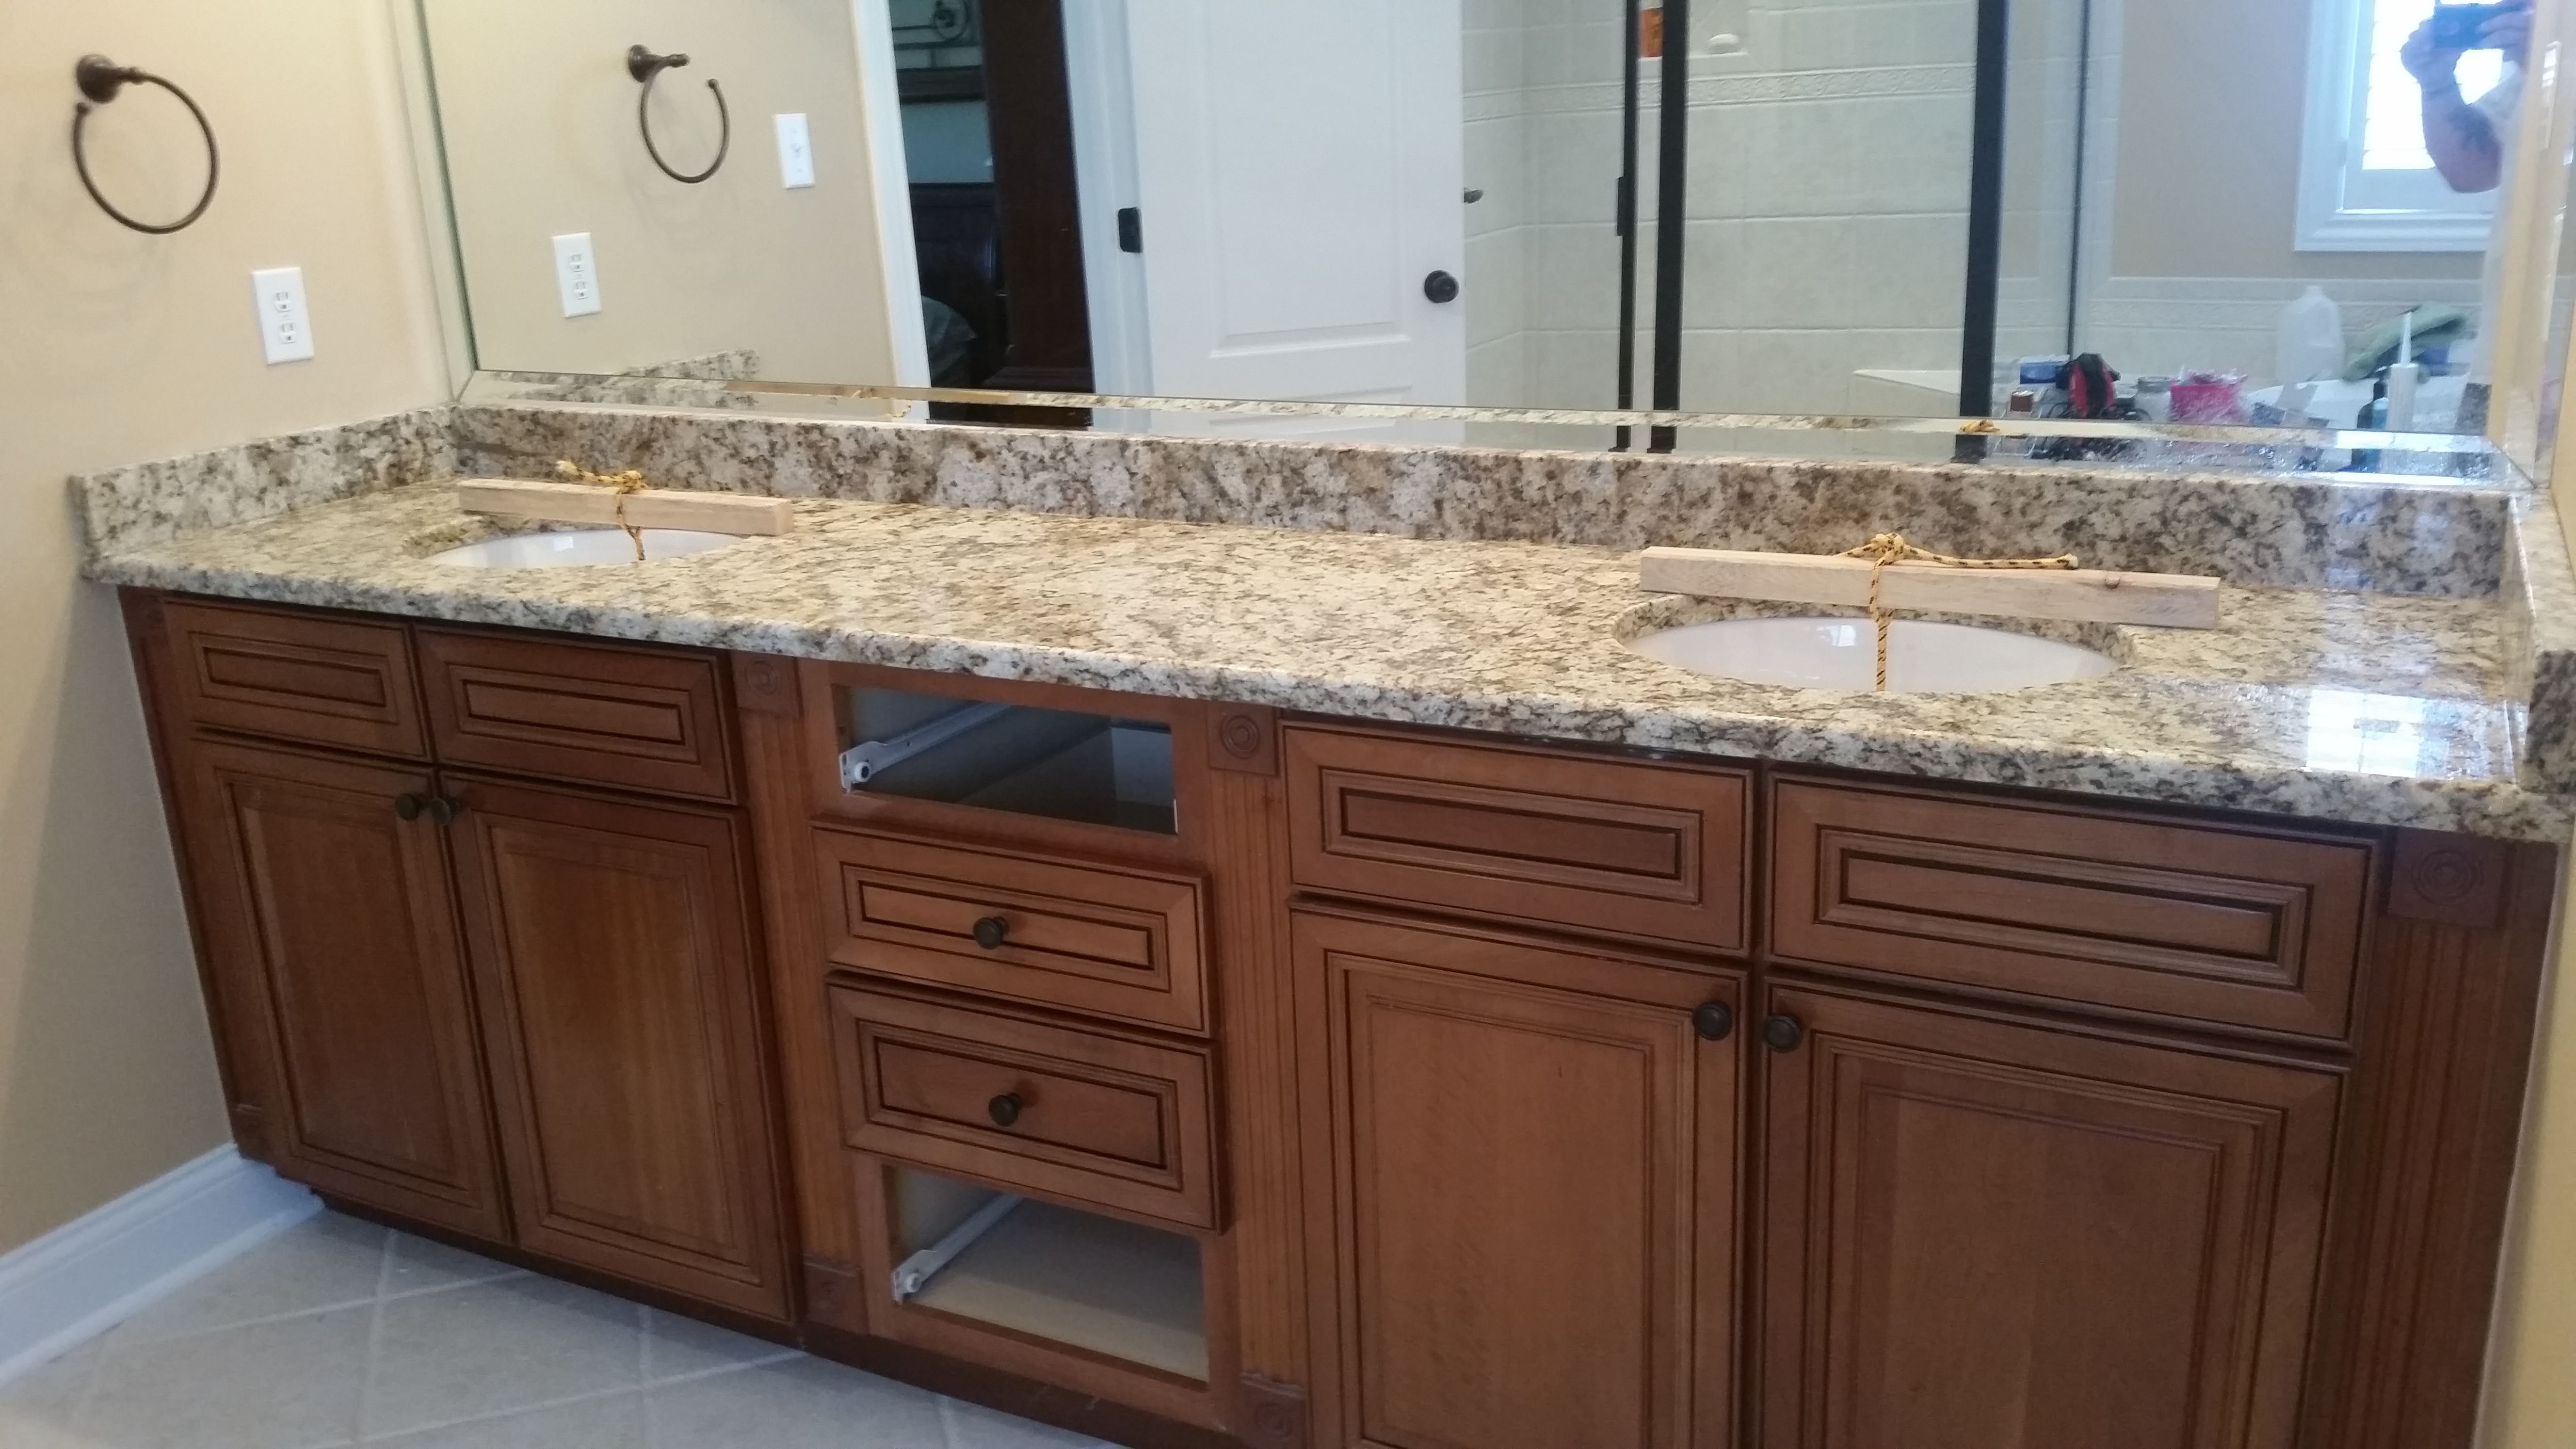 Giallo Napoli Granite Bathroom Vanity Install For The Rafferty Family.  Knoxvilleu0027s Stone Interiors. Showroom